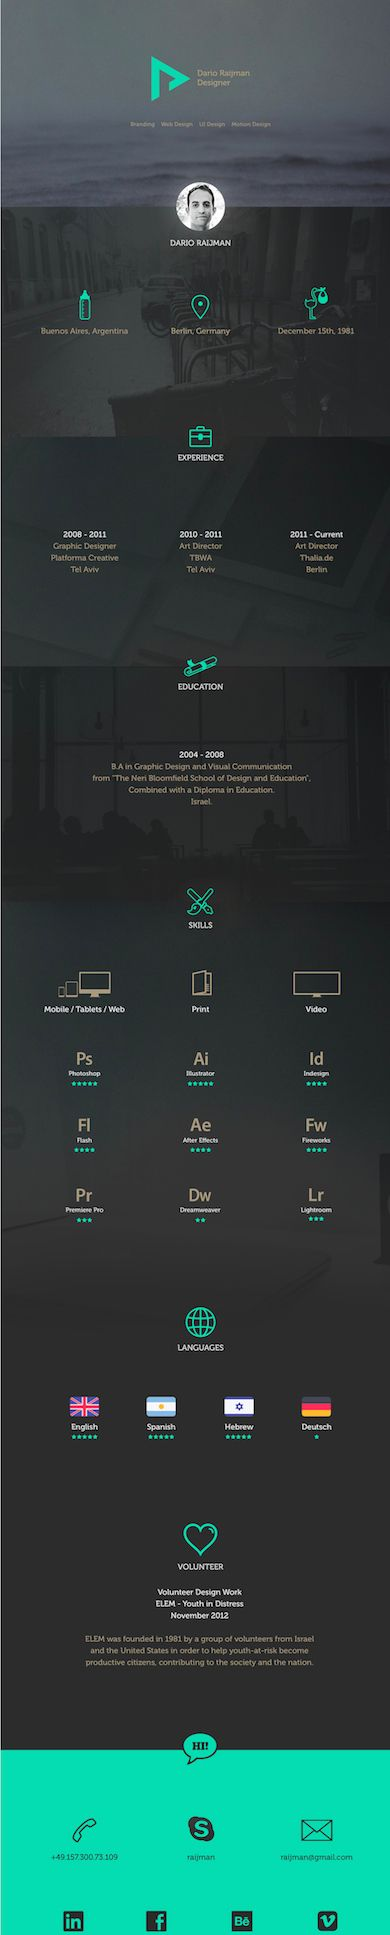 creative resume designs 2014 22 best digital CV images on